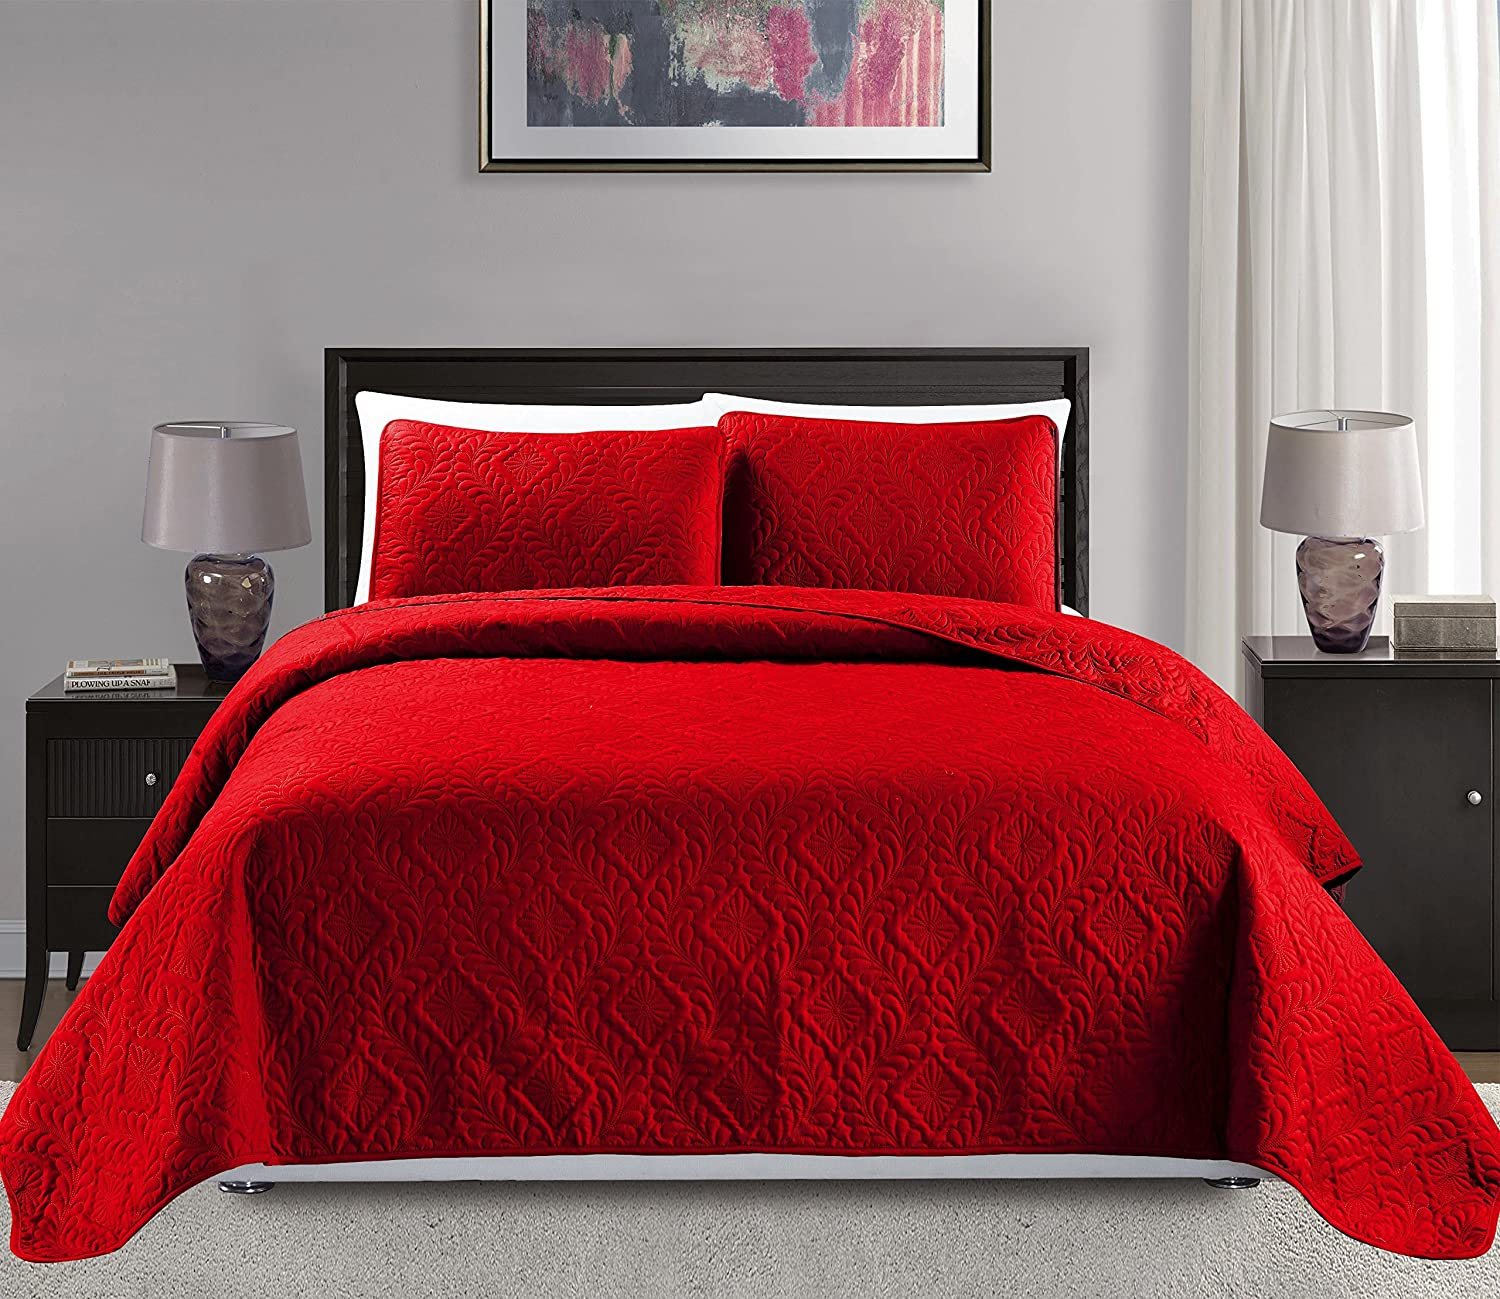 Mk Collection King/California king over size 118x106 3 pc Diamond Bedspread Bed-cover Embossed solid Red New MK Home FBA_B01G7WQBH0